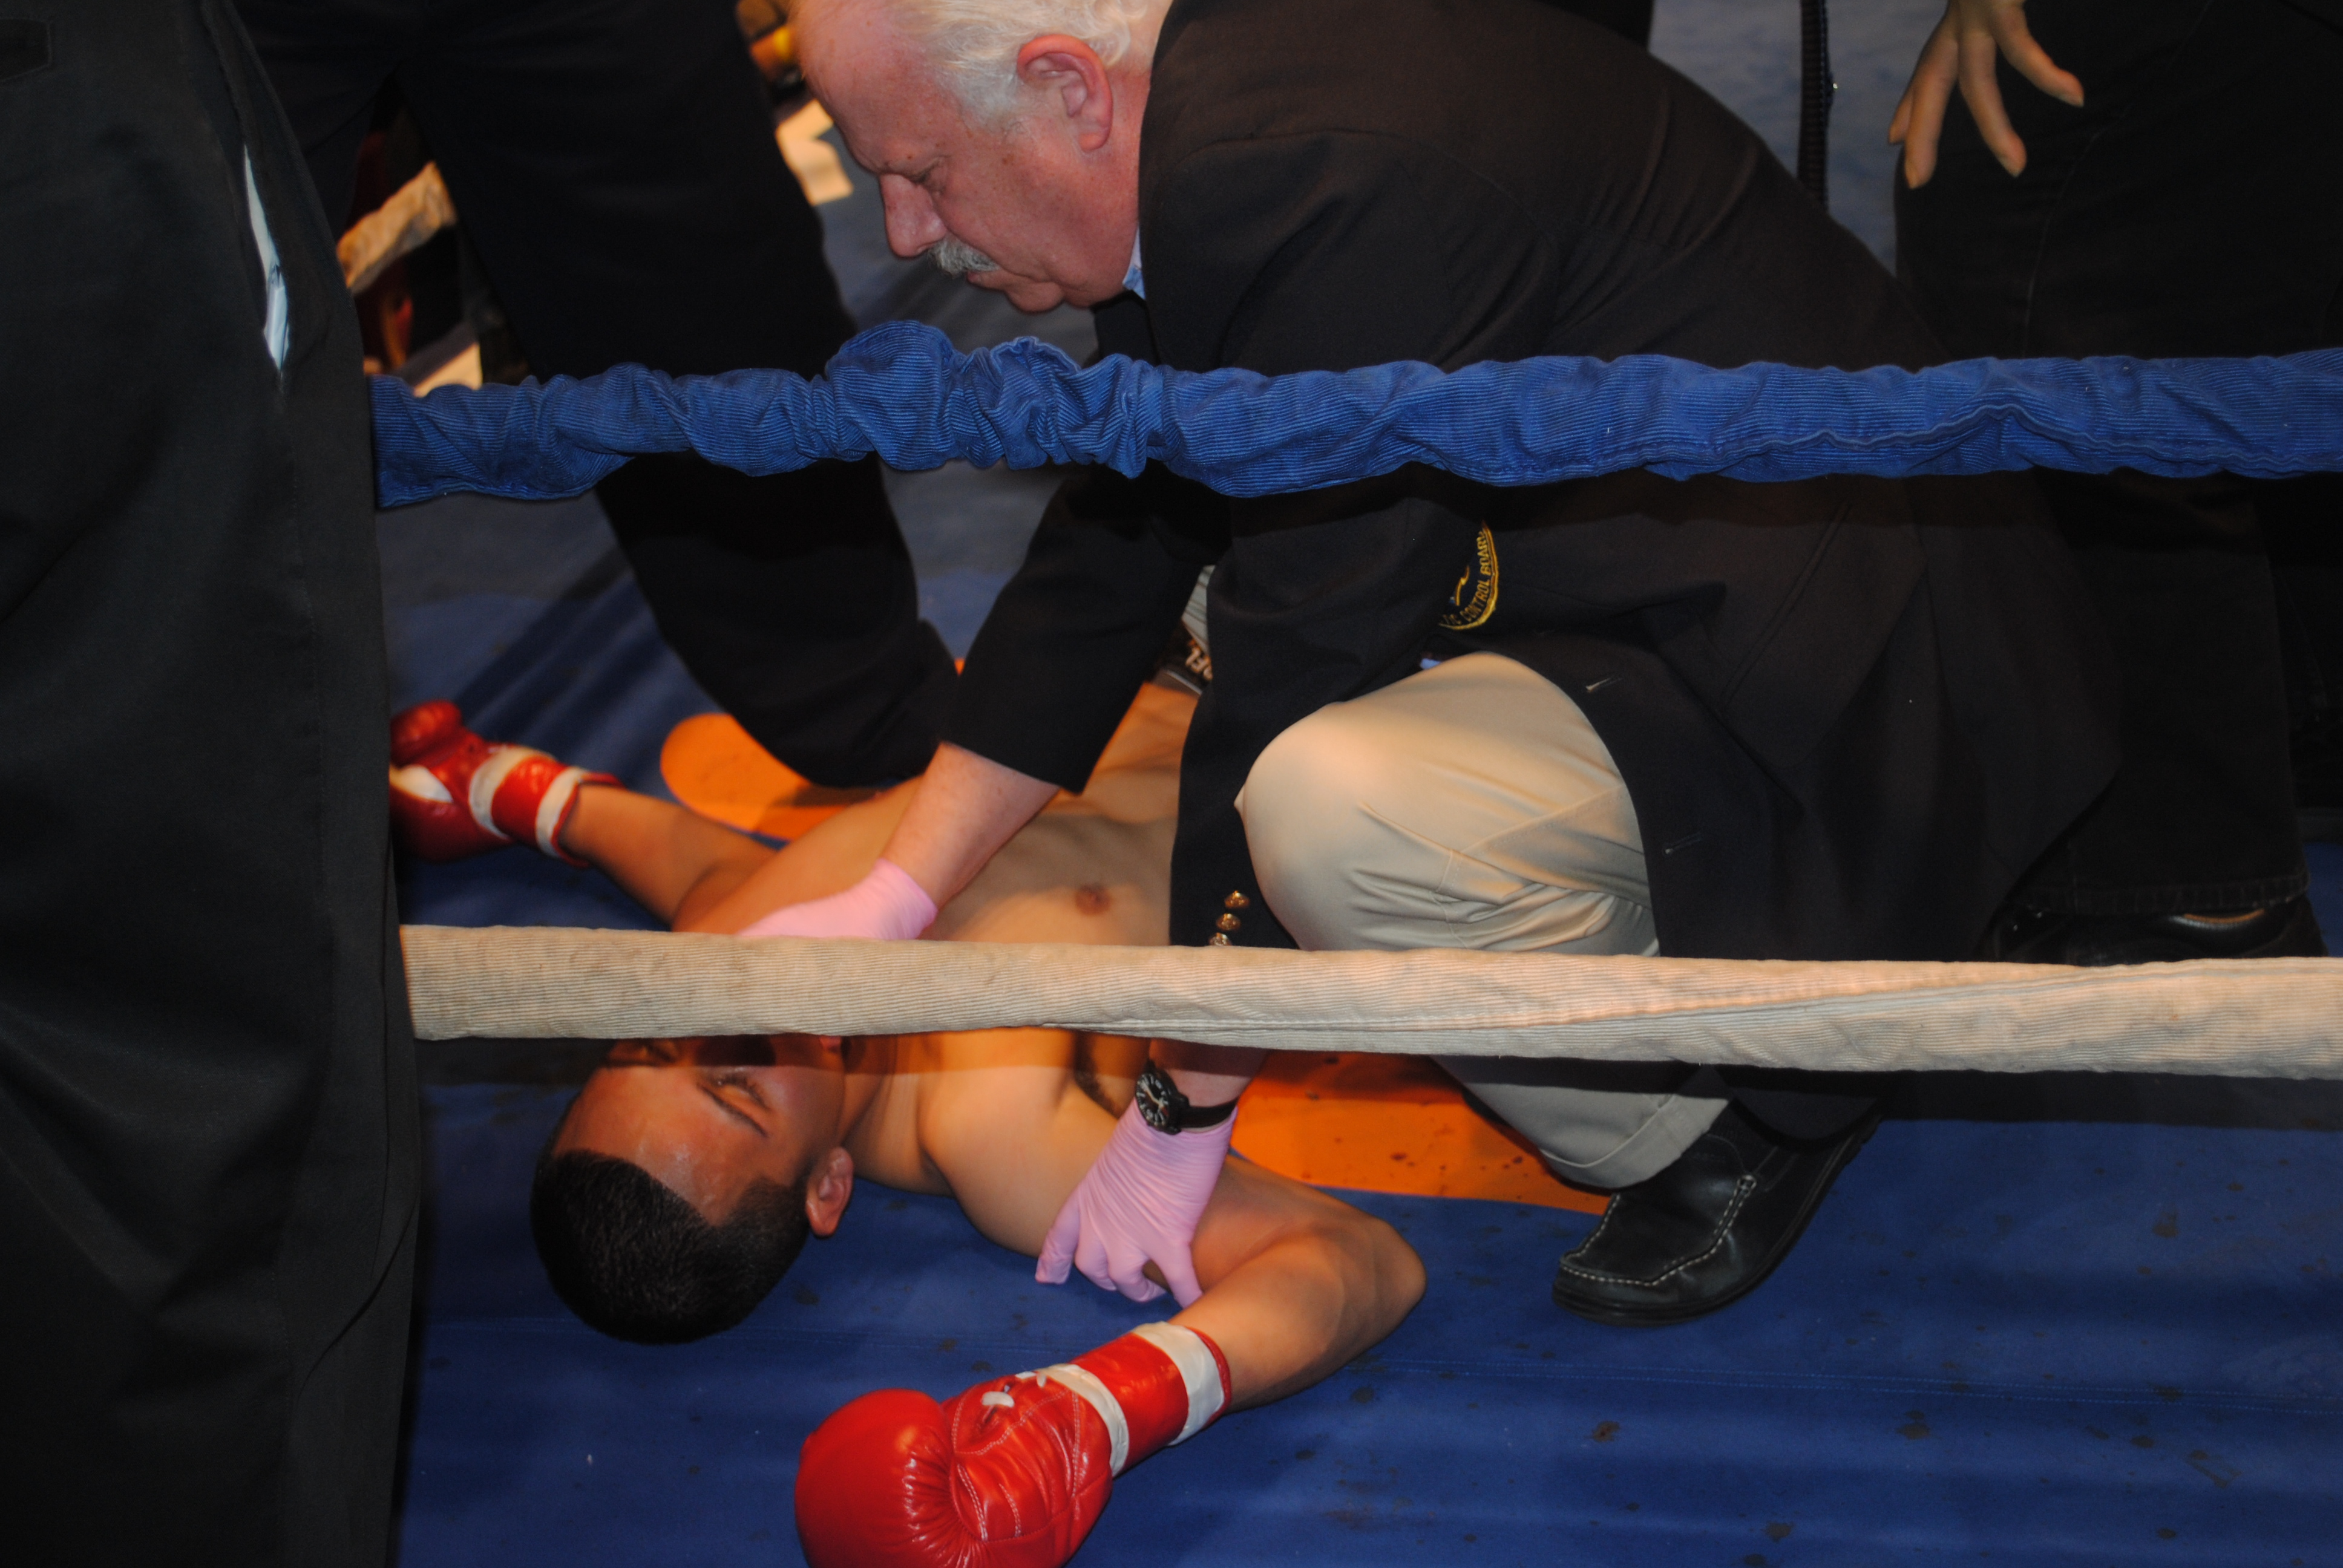 Boxing Stupidity! Robert Brizel's opinion on Rematches and Instant Replay